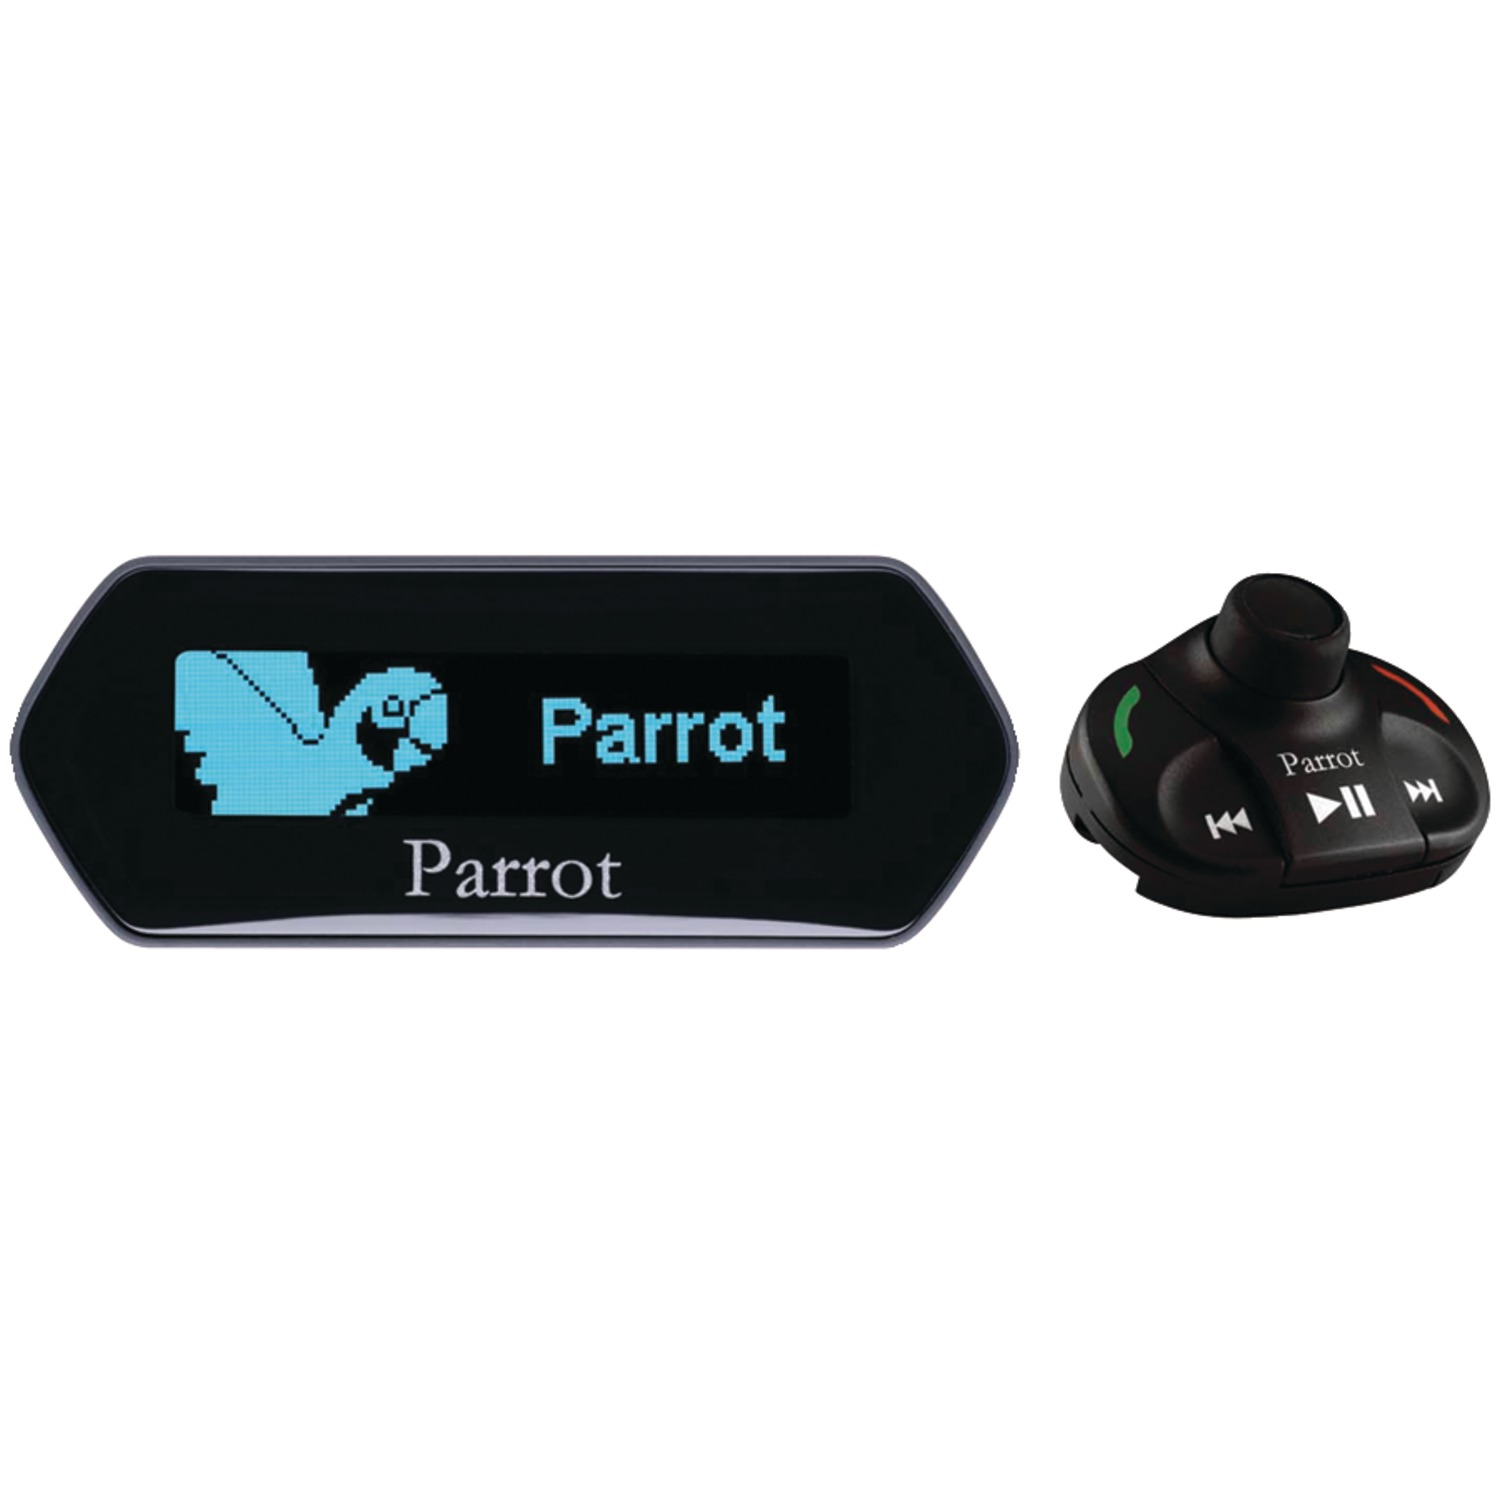 parrot mki9100 bluetooth r car kit with streaming music. Black Bedroom Furniture Sets. Home Design Ideas